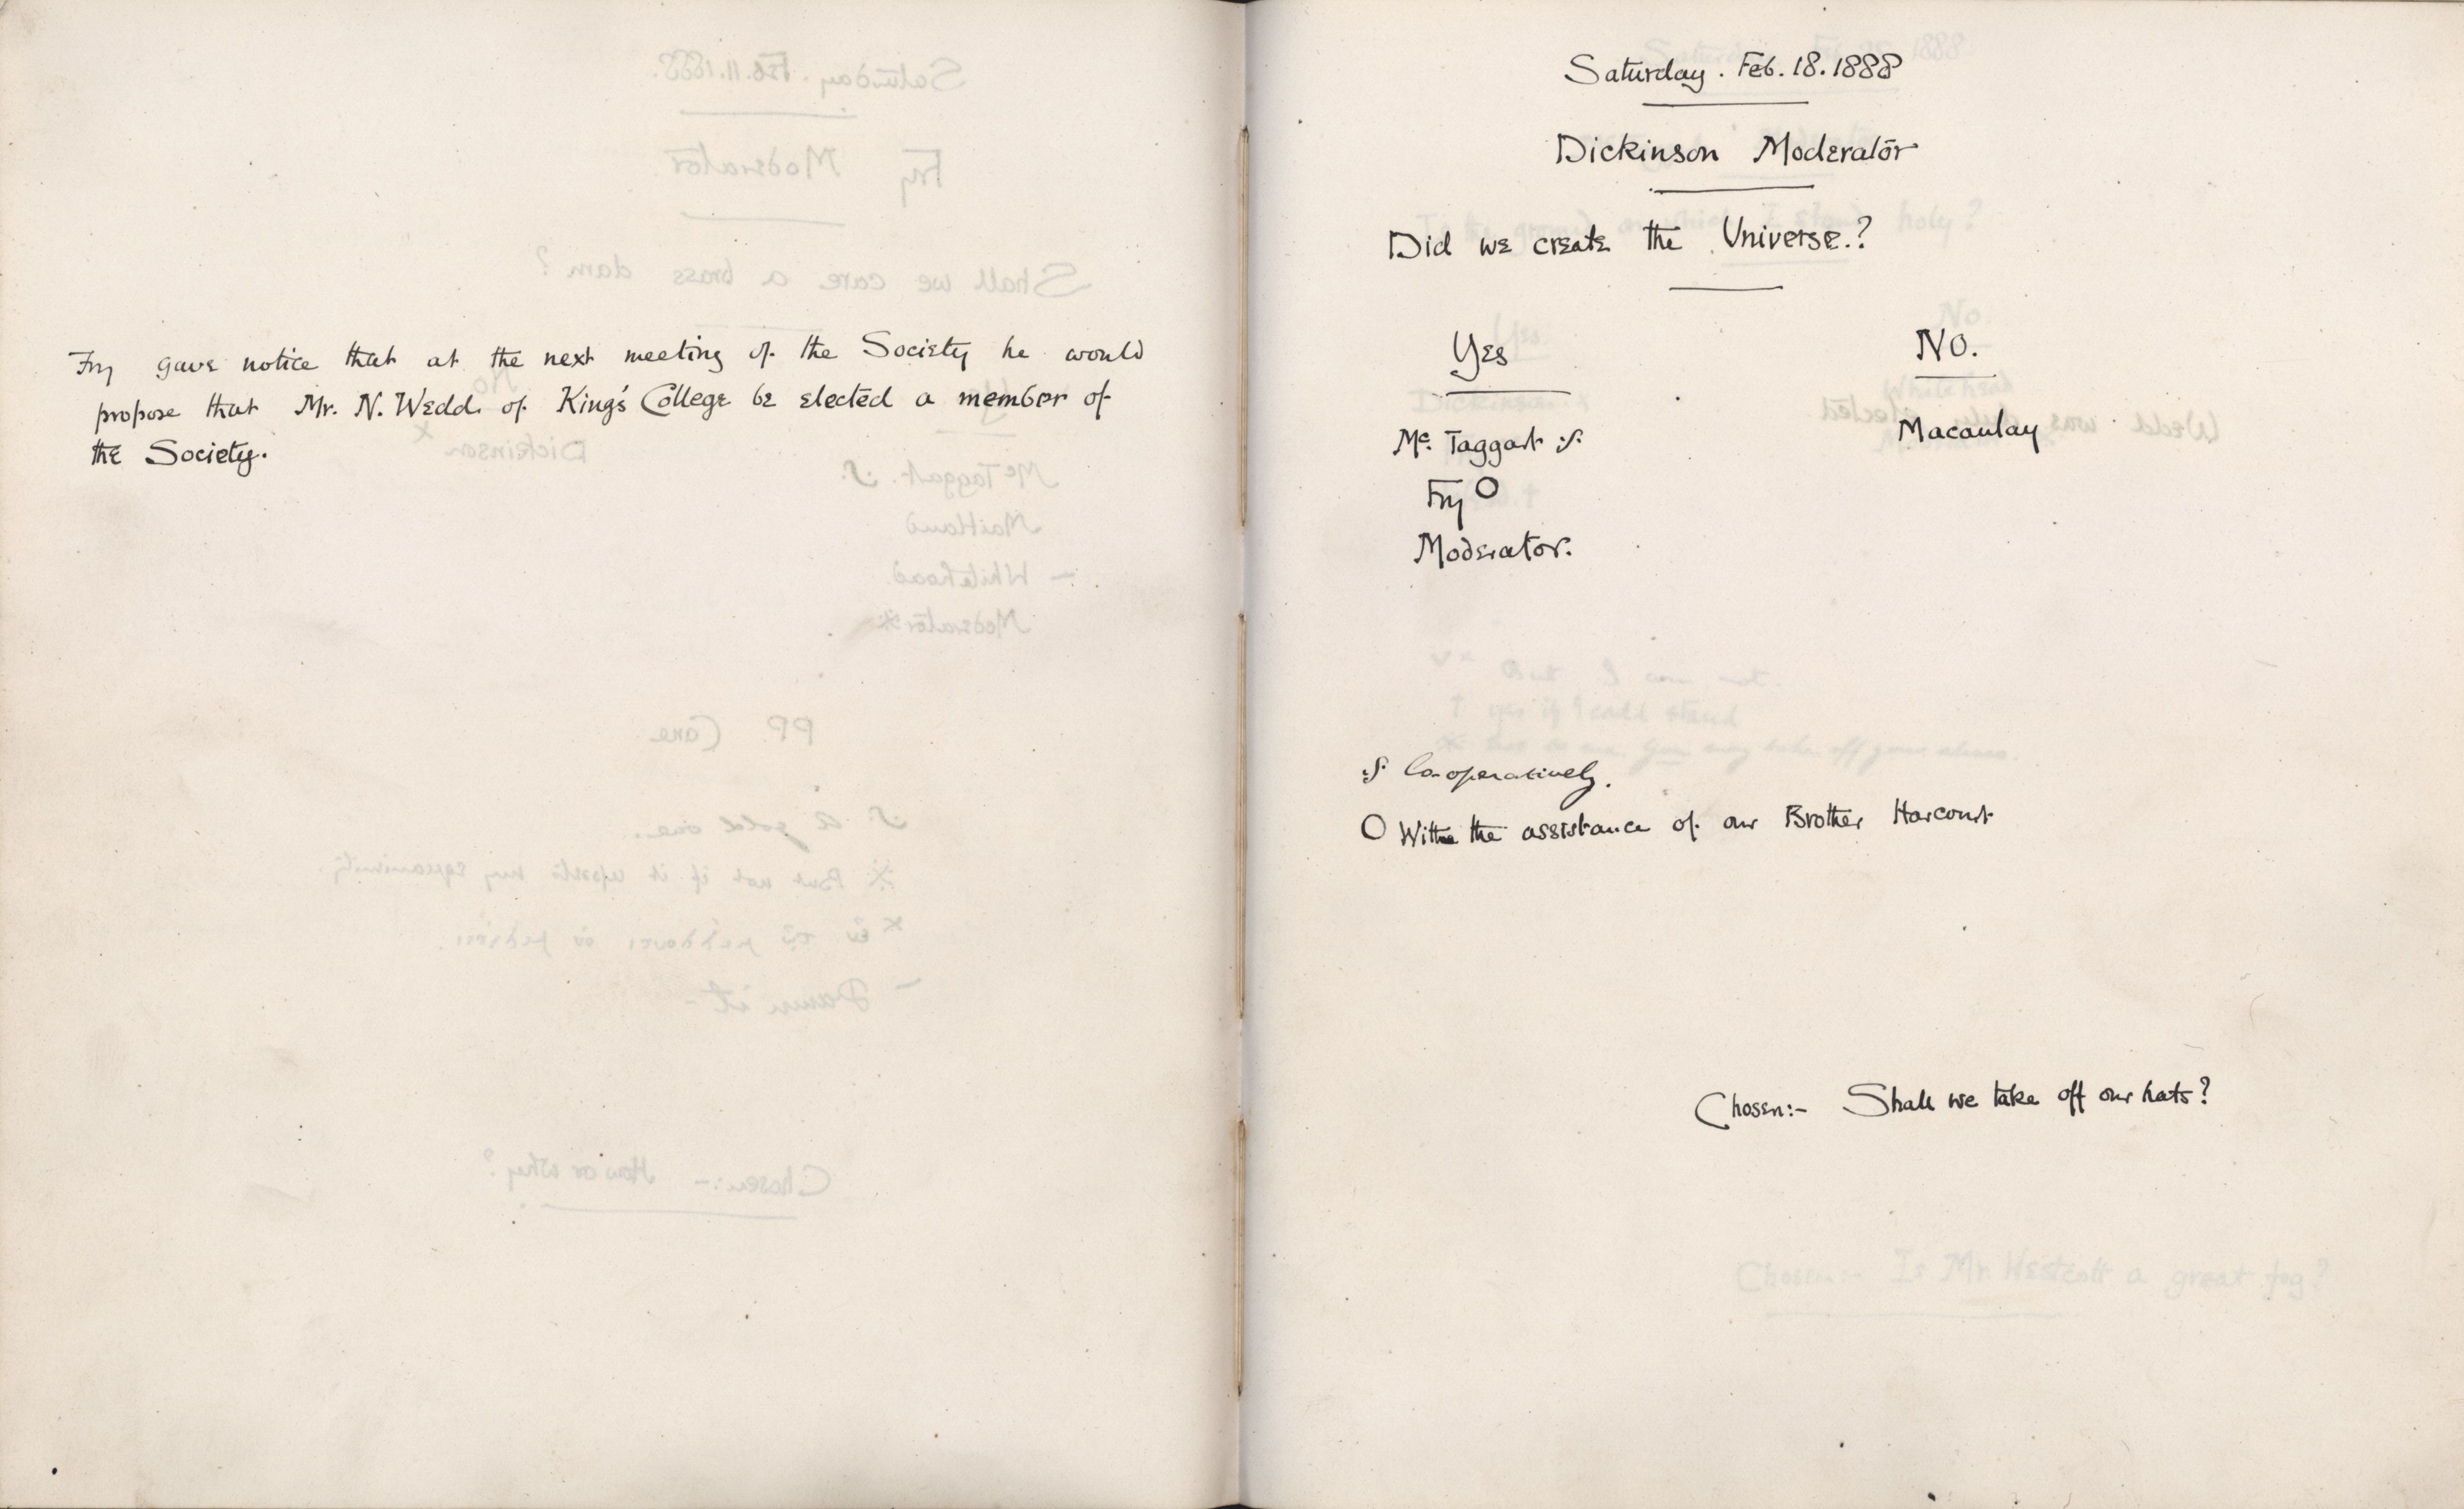 Minutes of a meeting in which Fry gave notice that he would propose the election of Nathaniel Wedd at the next meeting. [KCAS/39/1/10, 18 February 1888]